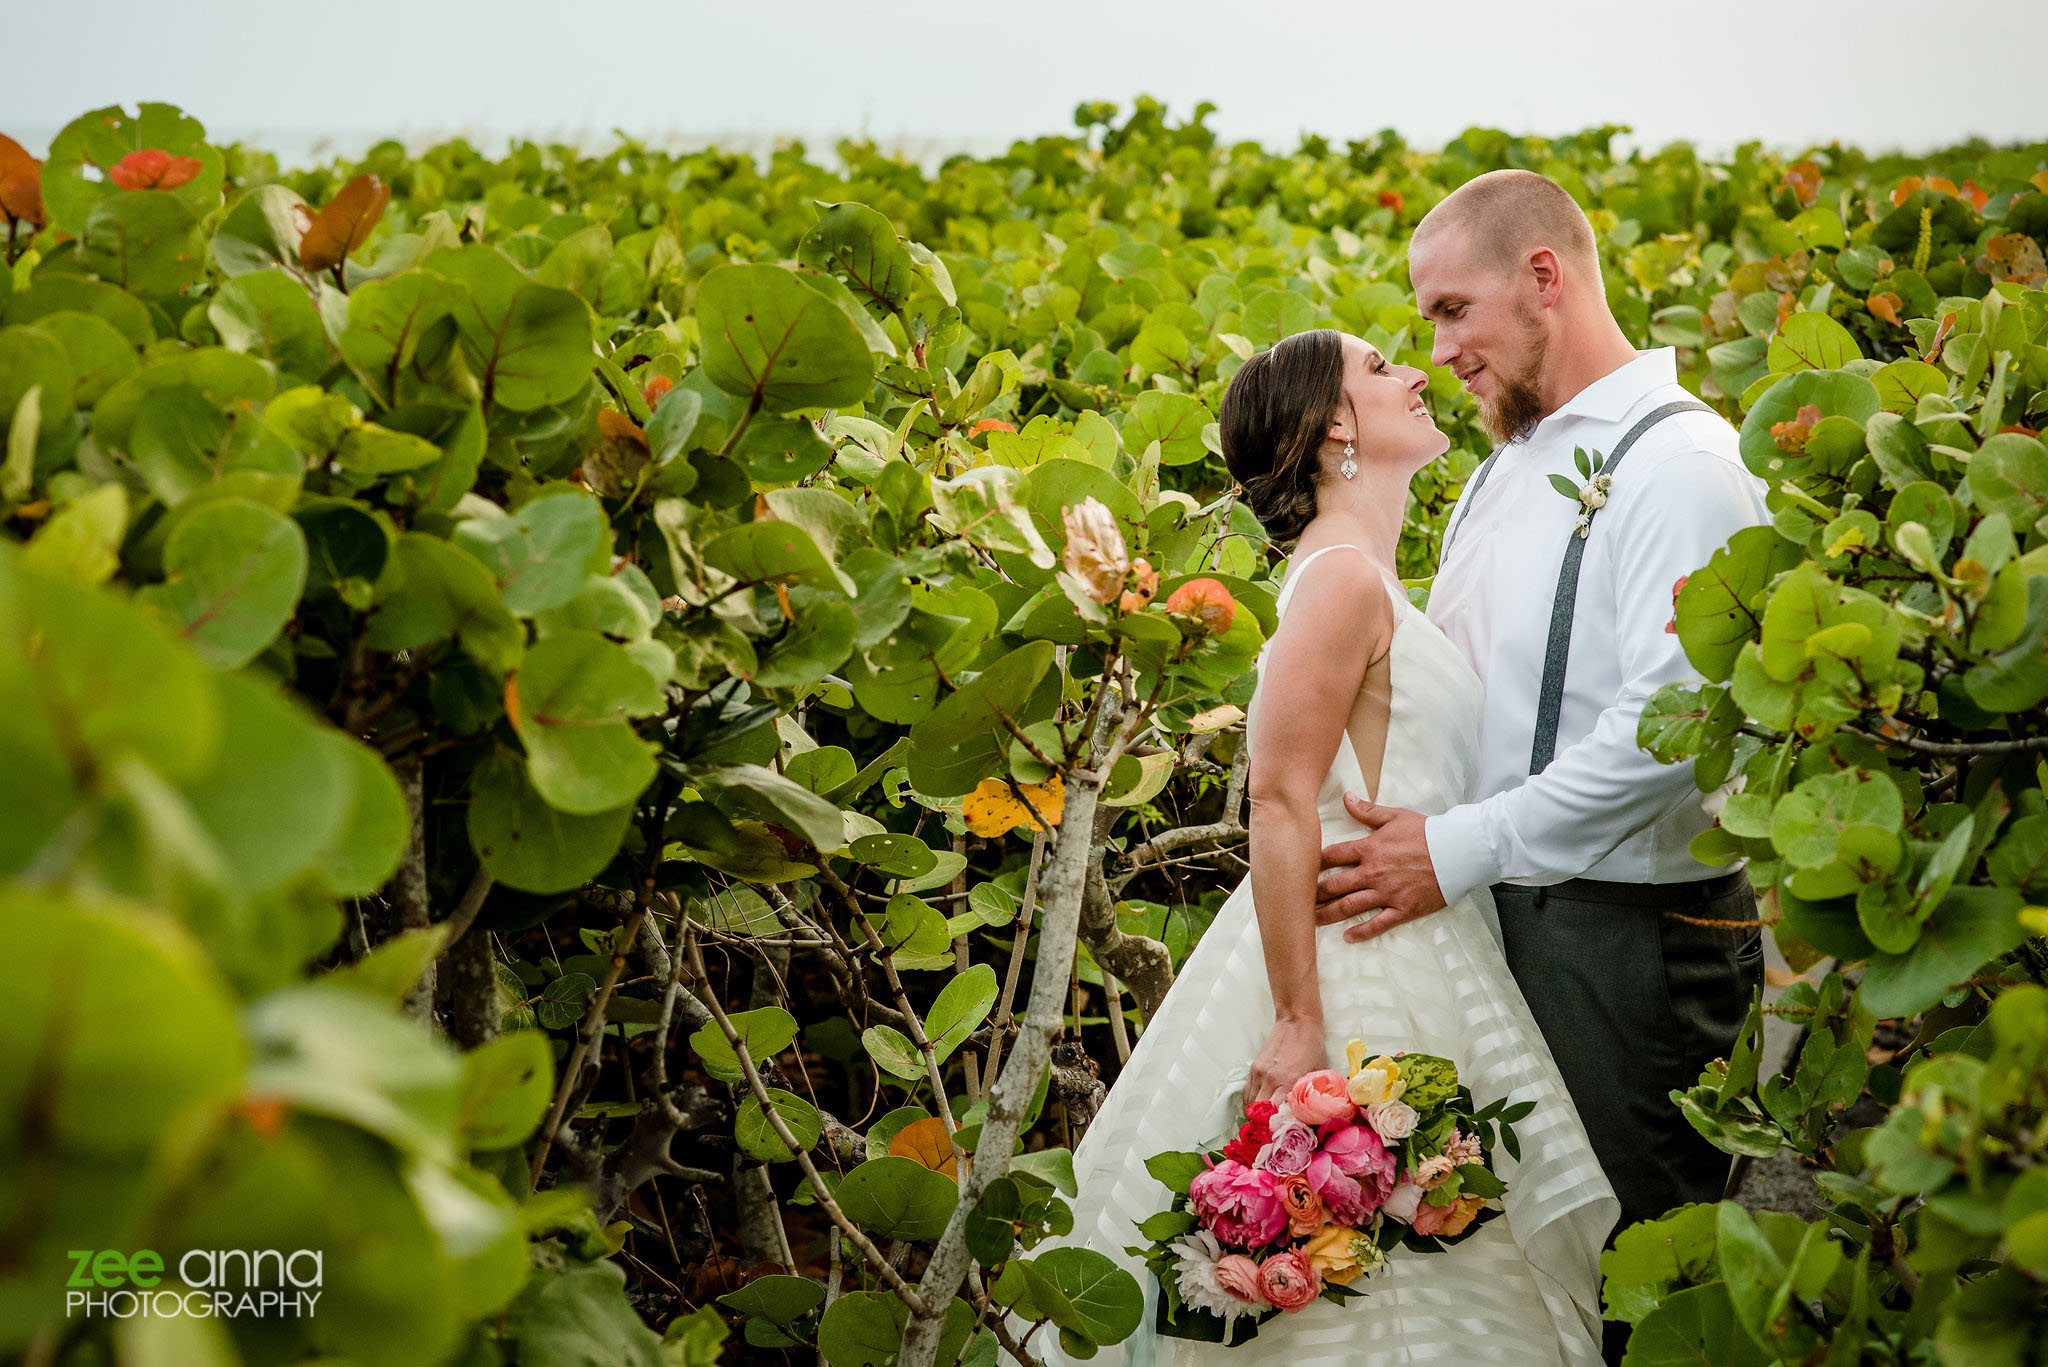 wedding couple photo greenery plants island